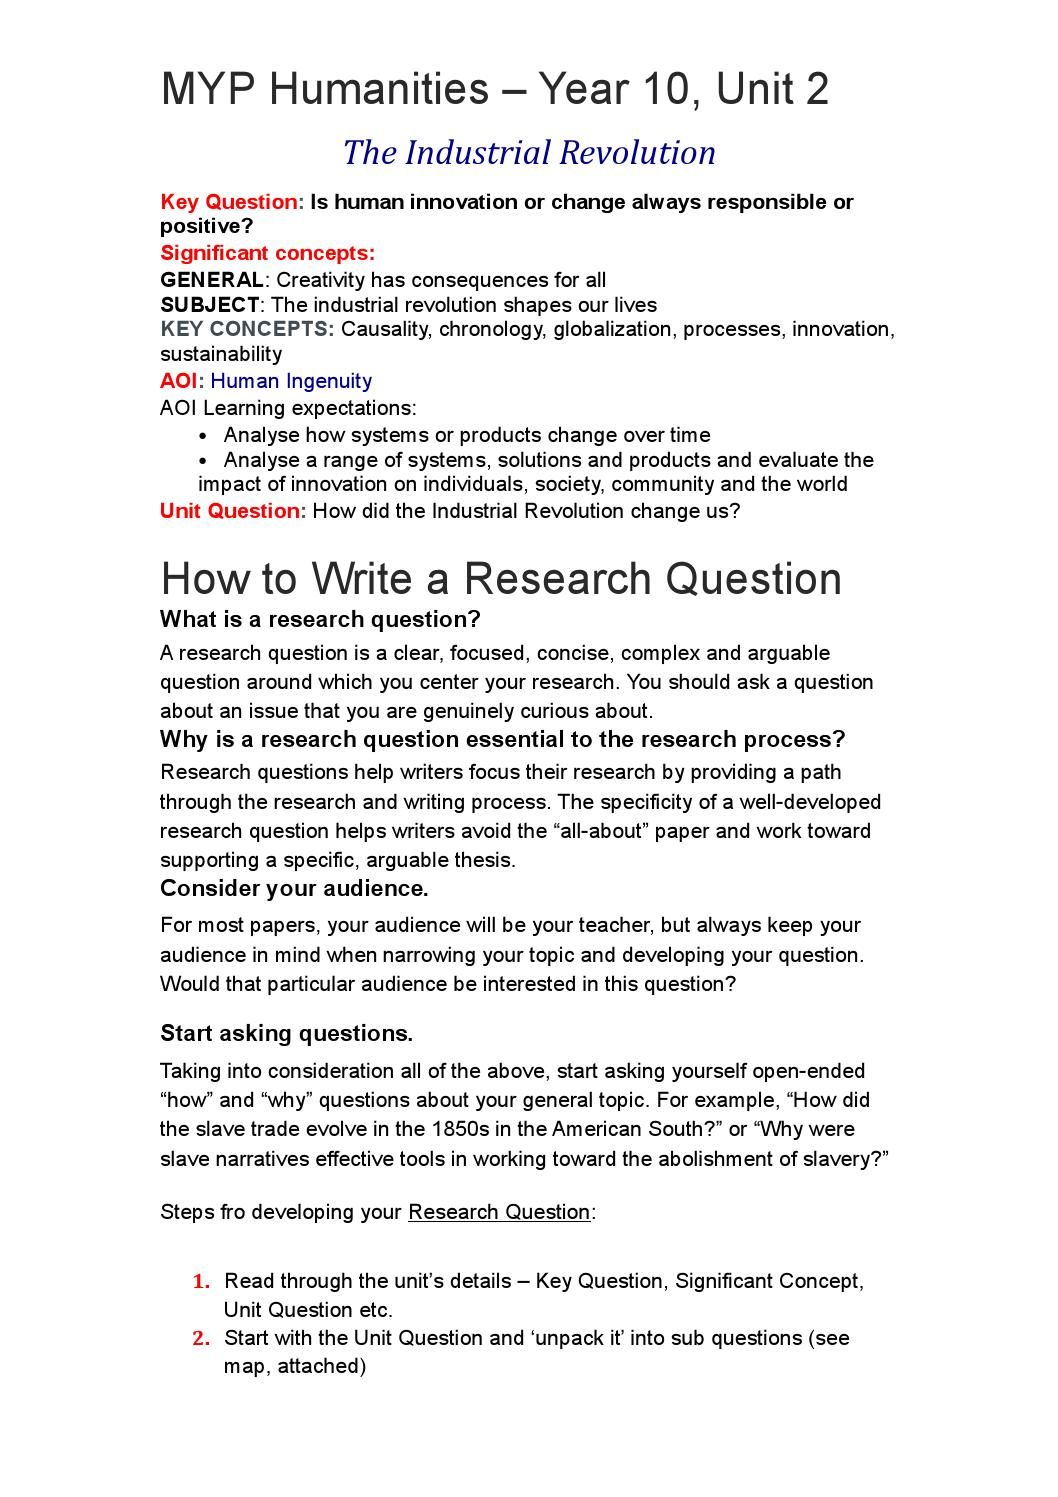 015 Page 1 Questions For Research Formidable Paper Examples Abortion Topic Full